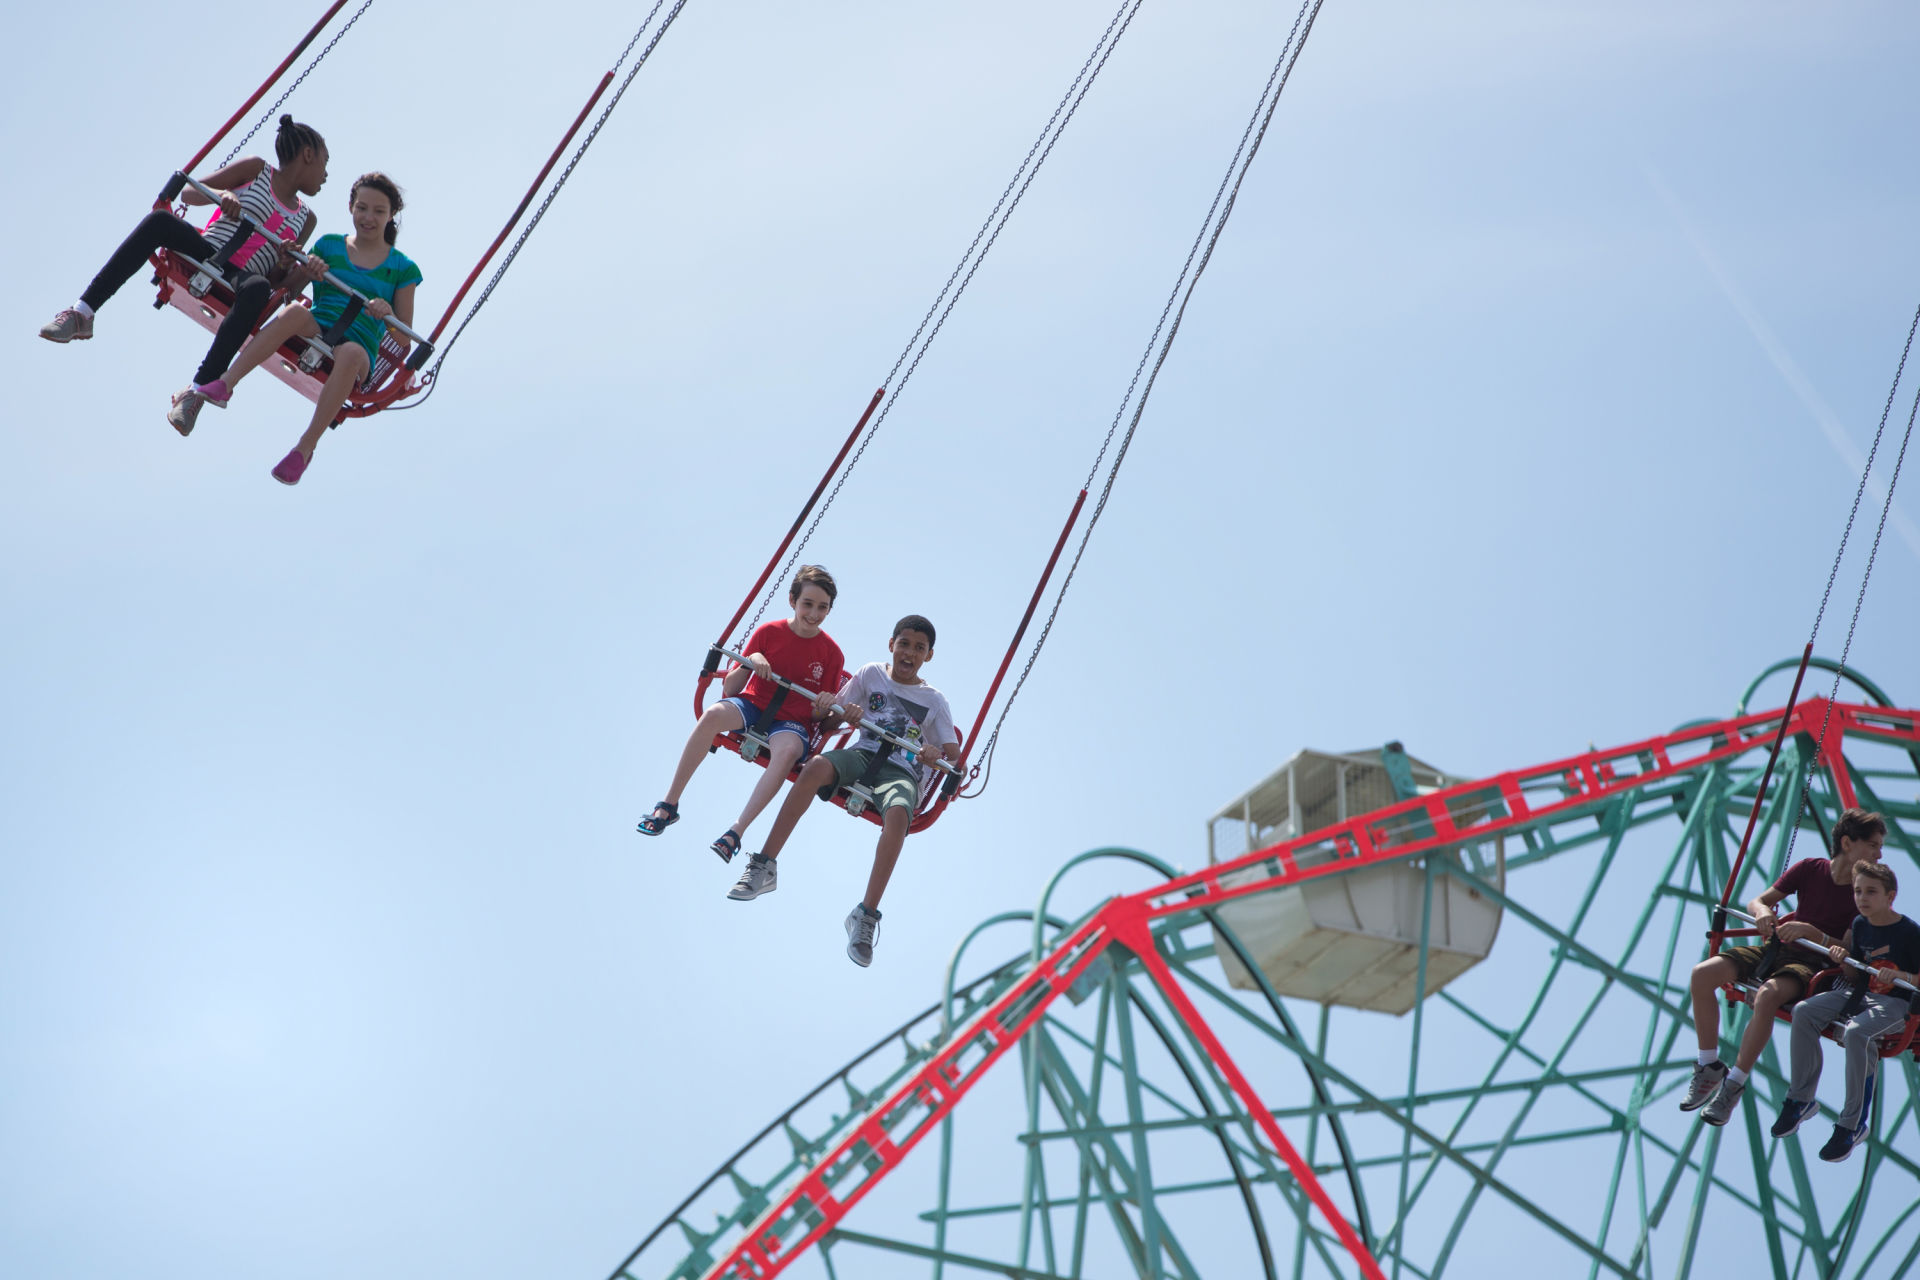 Etai Kurtzman, 12, and Terrell Gantt, 12, on a ride at Luna Park in Coney Island in Brooklyn, NY May 28, 2015. The group of students from Quest to Learn School took the day trip to Coney Island to analyze user experience on games and rides at Luna Park as part of  their late-spring school curriculum.